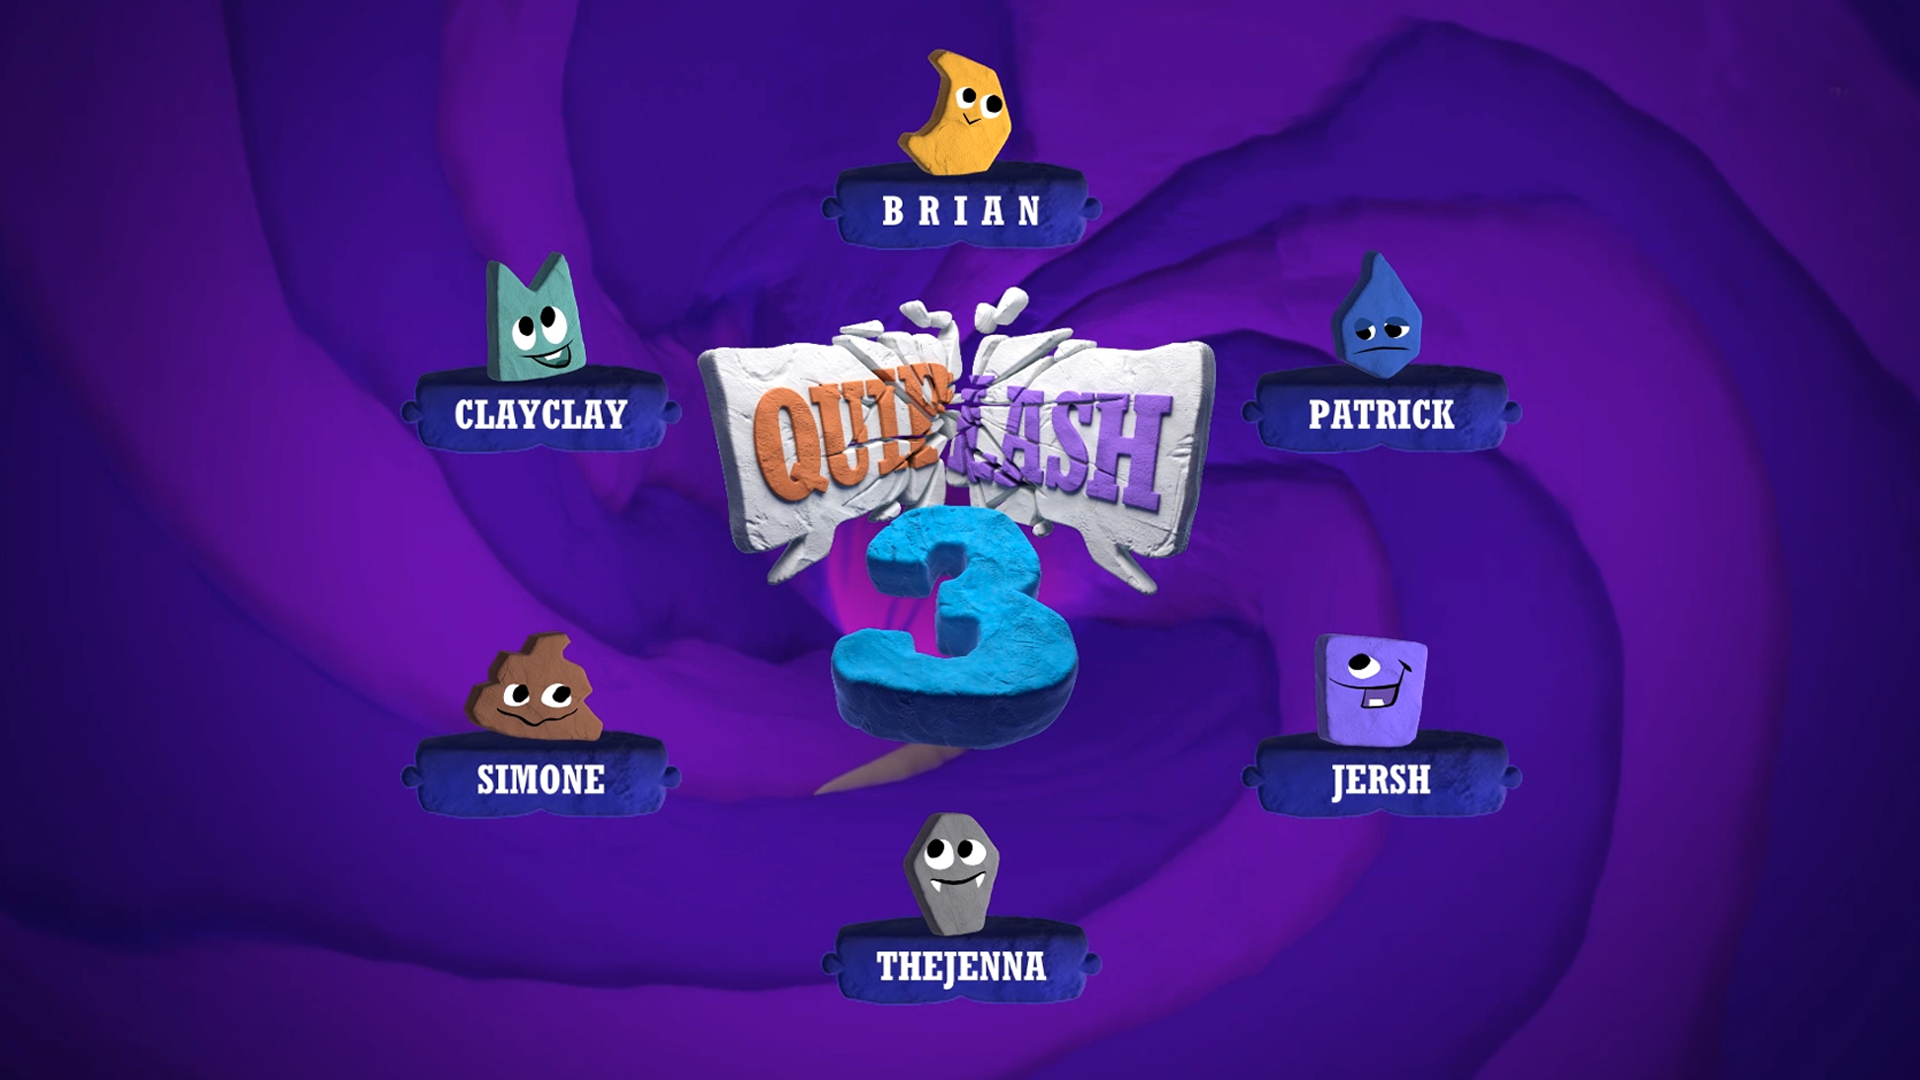 A loading screen from Quiplash 3 with six cute characters, each with a name underneath: Brian, Patrick, Jersh, The Jenna, Simone, and Clay Clay.